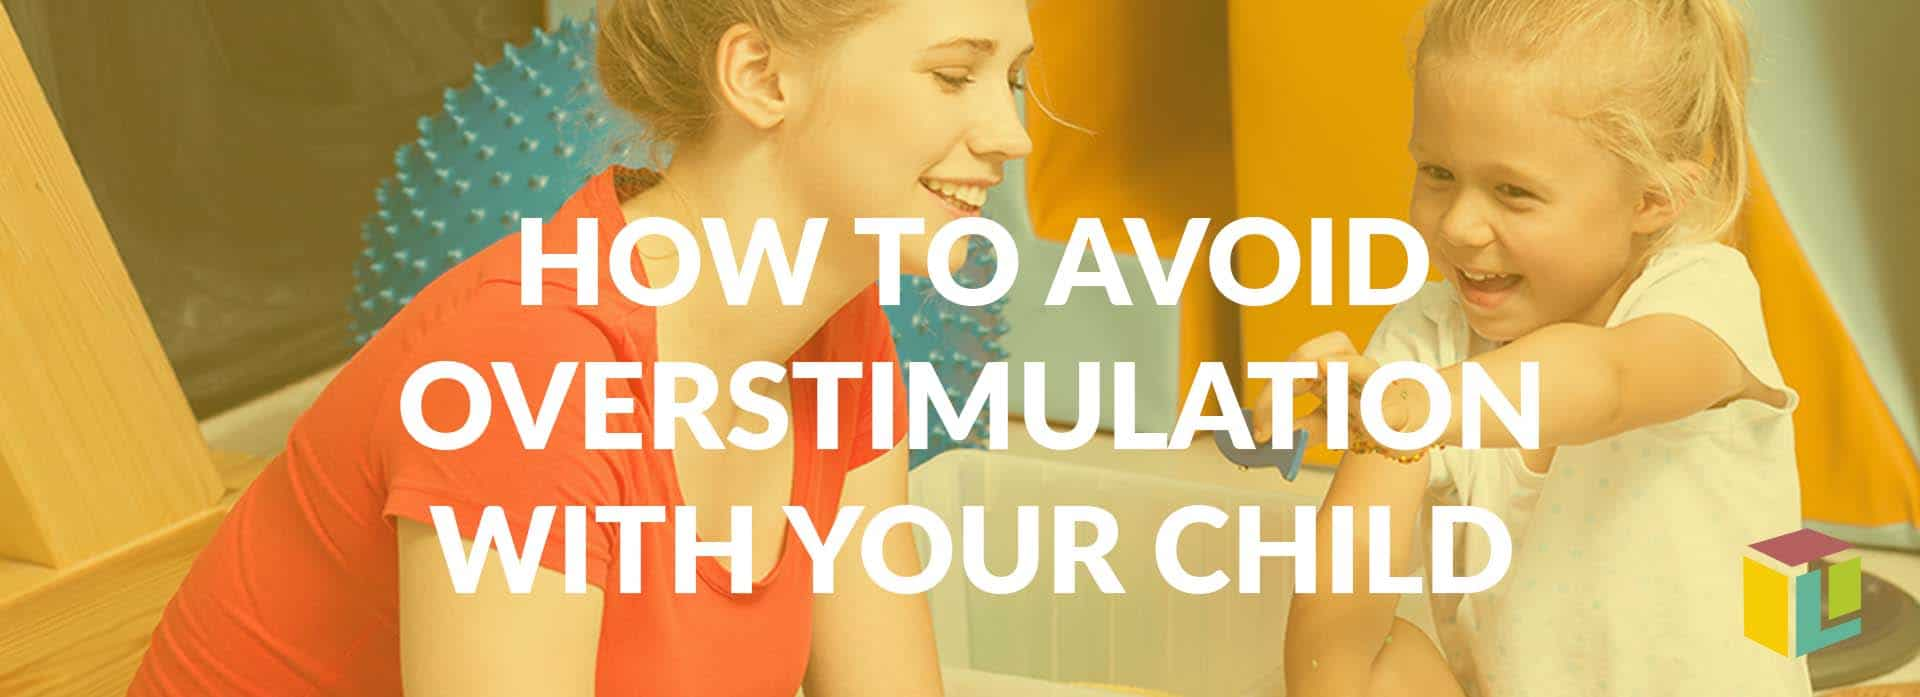 How To Avoid Overstimulation With Your Child